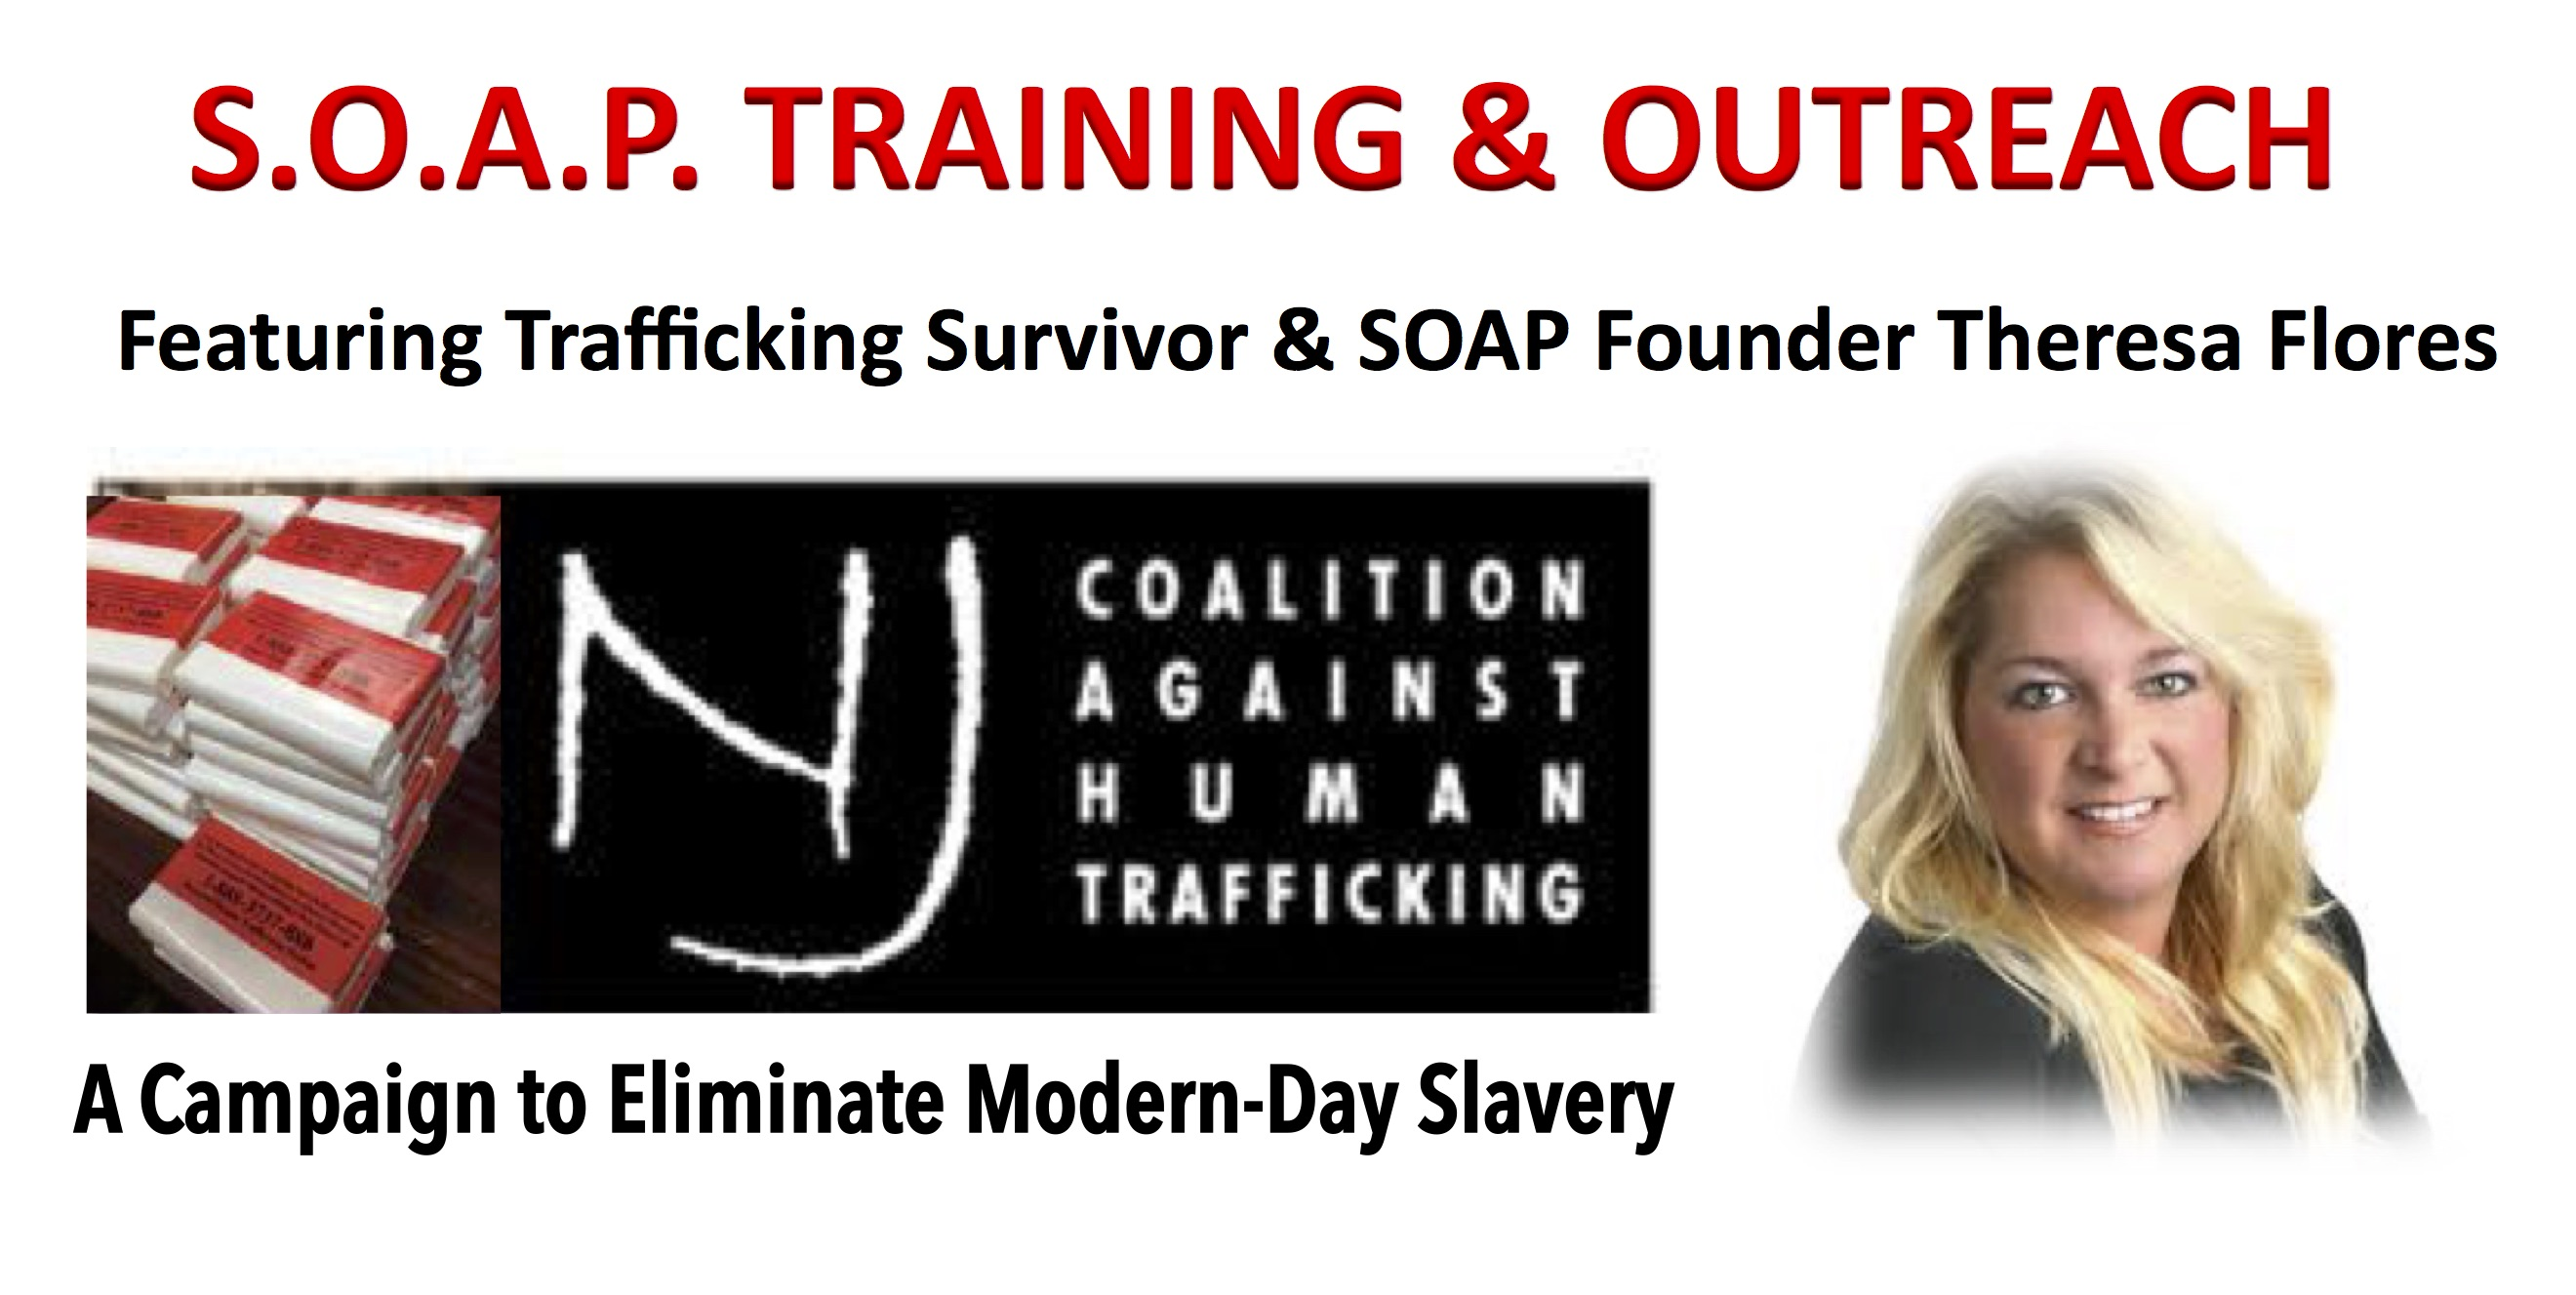 SOAP Outreach & Training With Theresa Flores